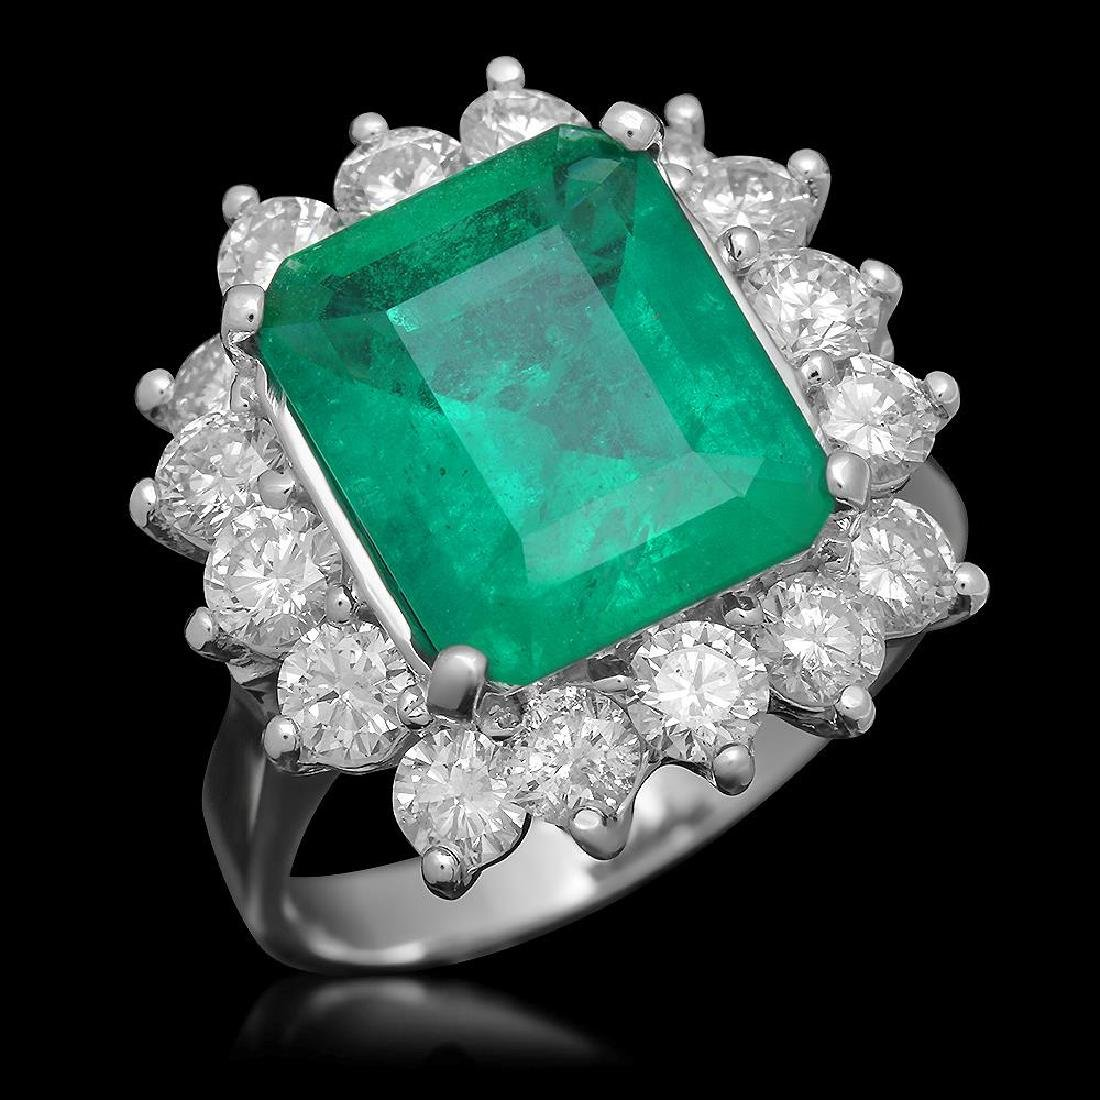 18K Gold 4.18 Emerald 2.00 Diamond Ring